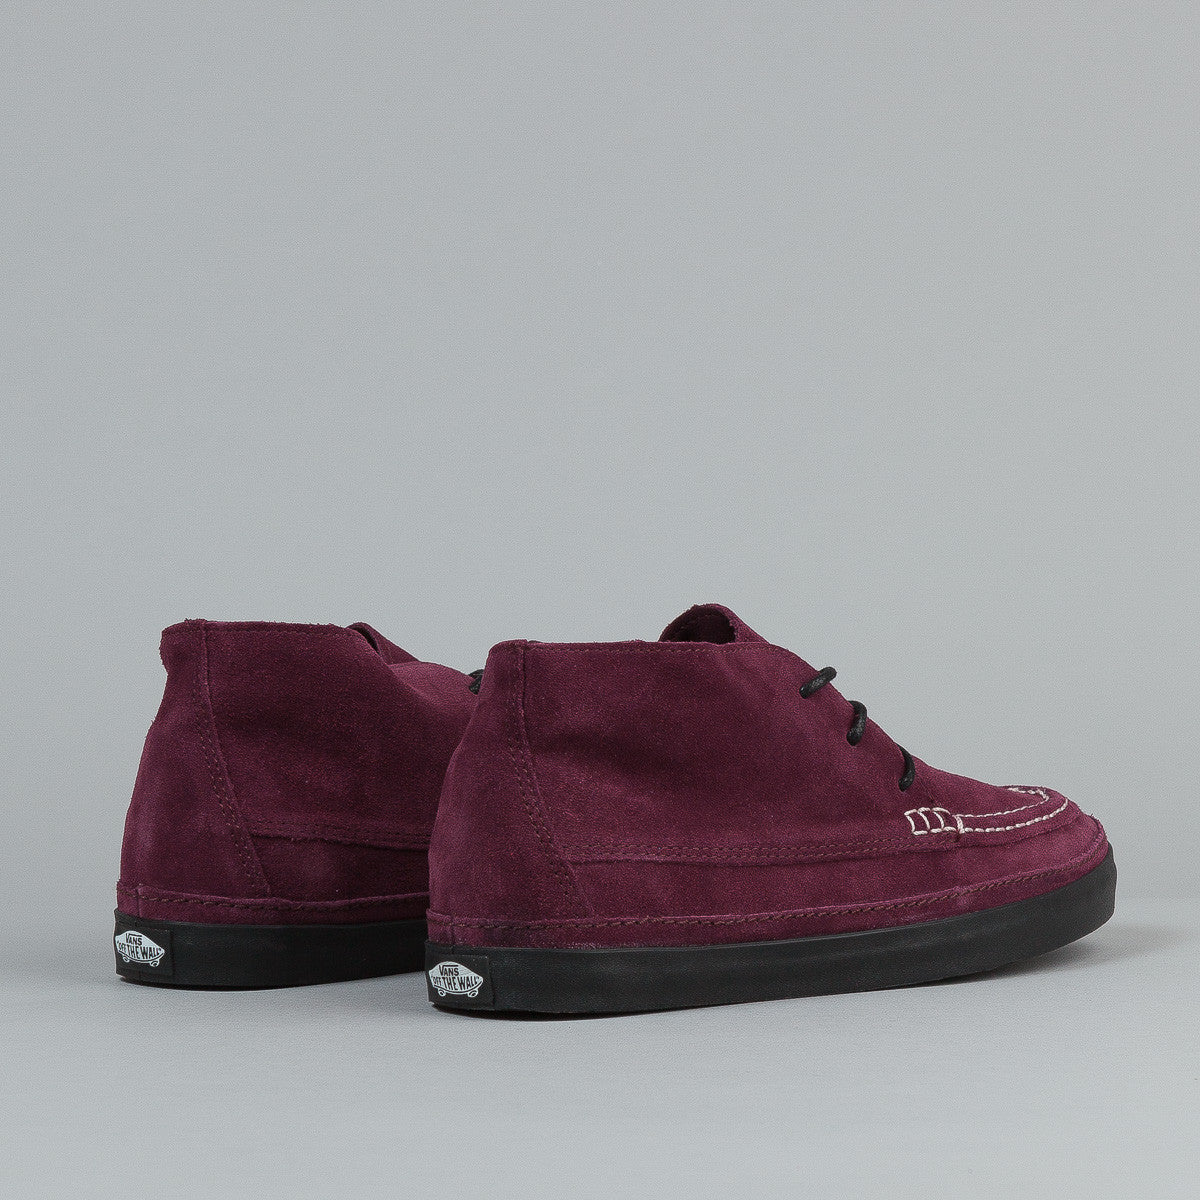 Vans Mesa Moc CA Shoes - (Suede) Fig